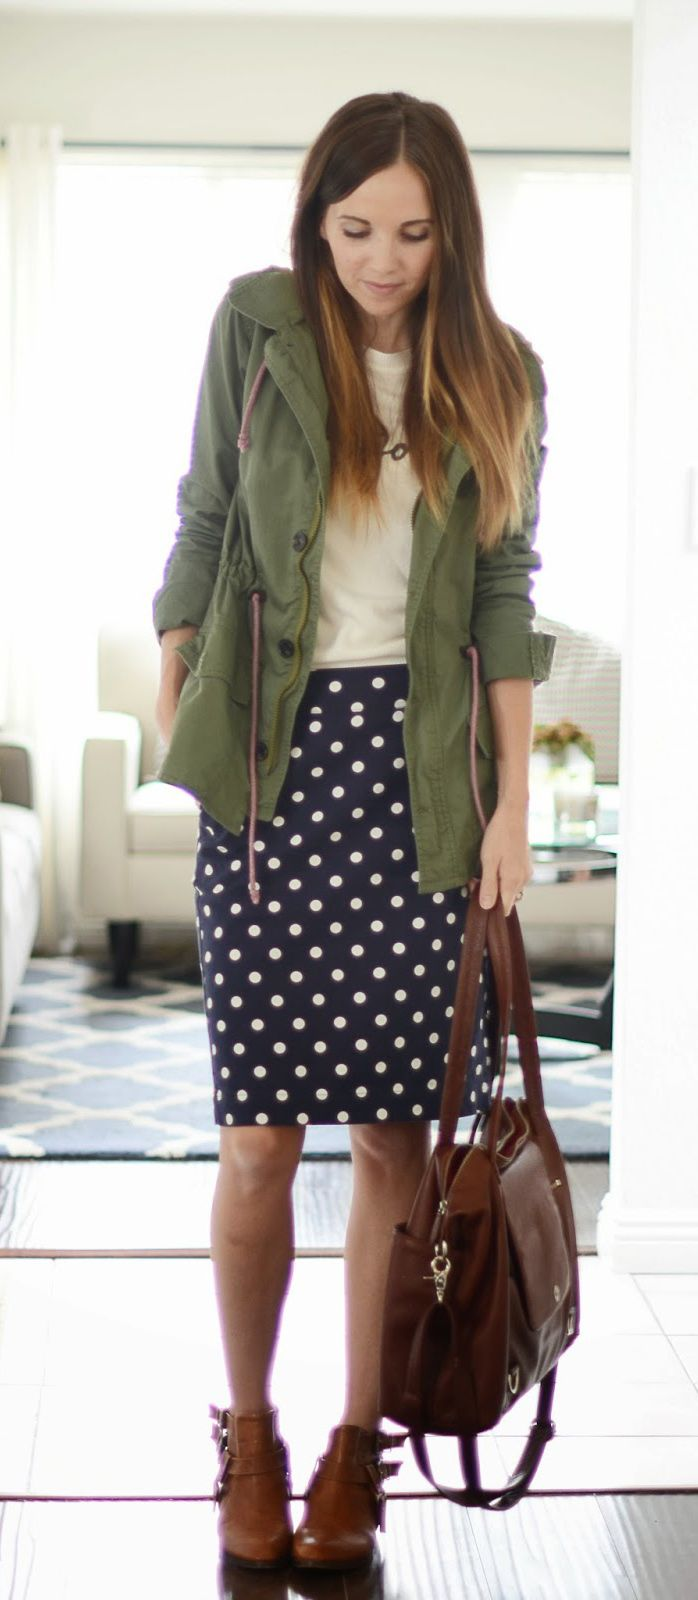 white top over polka dot dress with olive button down and studded boots